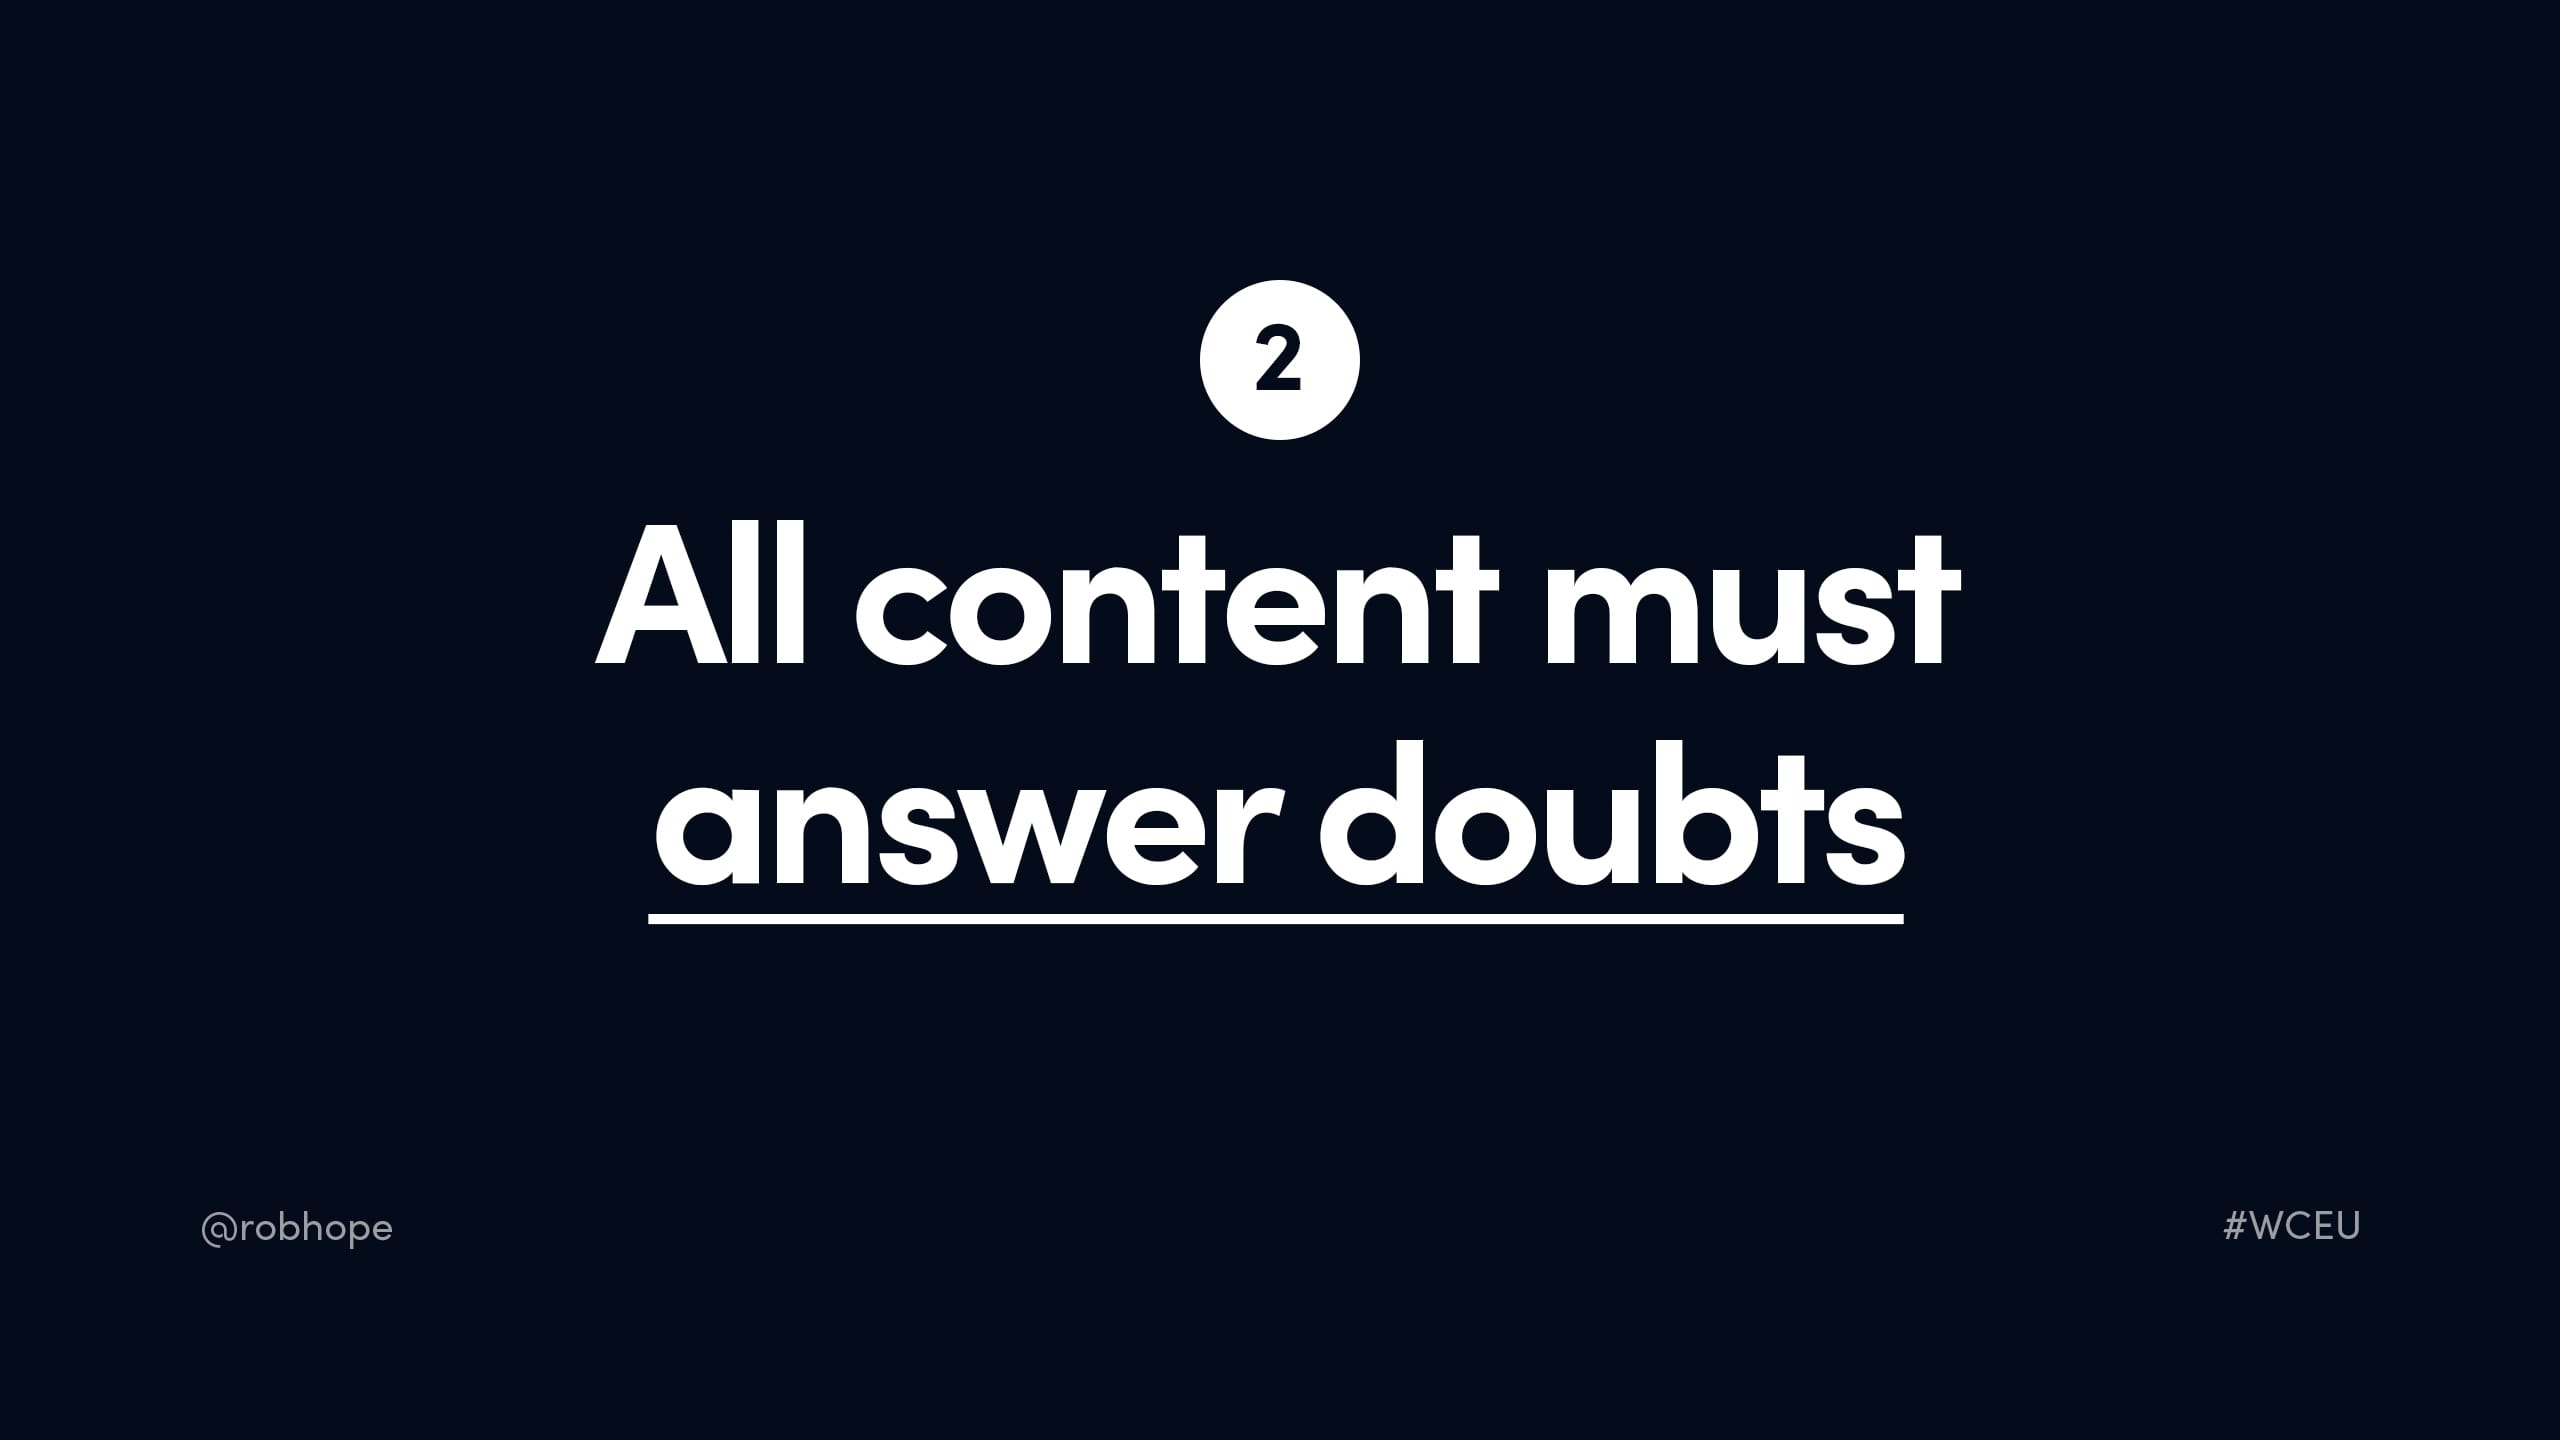 All content must answer doubts